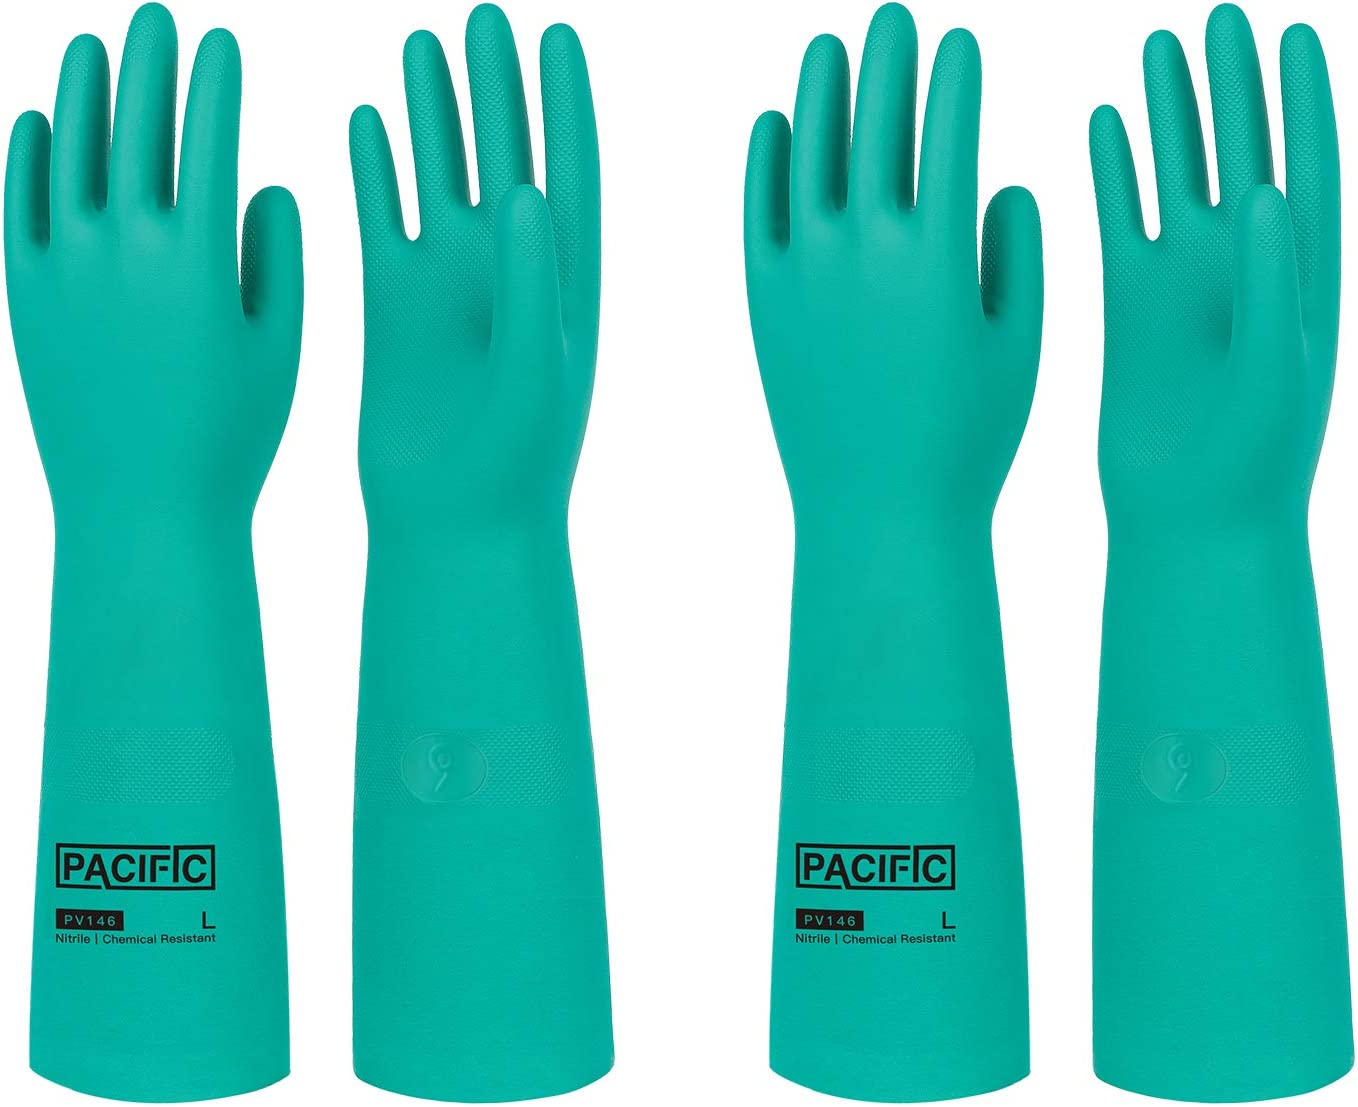 PACIFIC PPE 2 Pairs Chemical Gloves Superior Resistant Ho Nitrile trust Resist